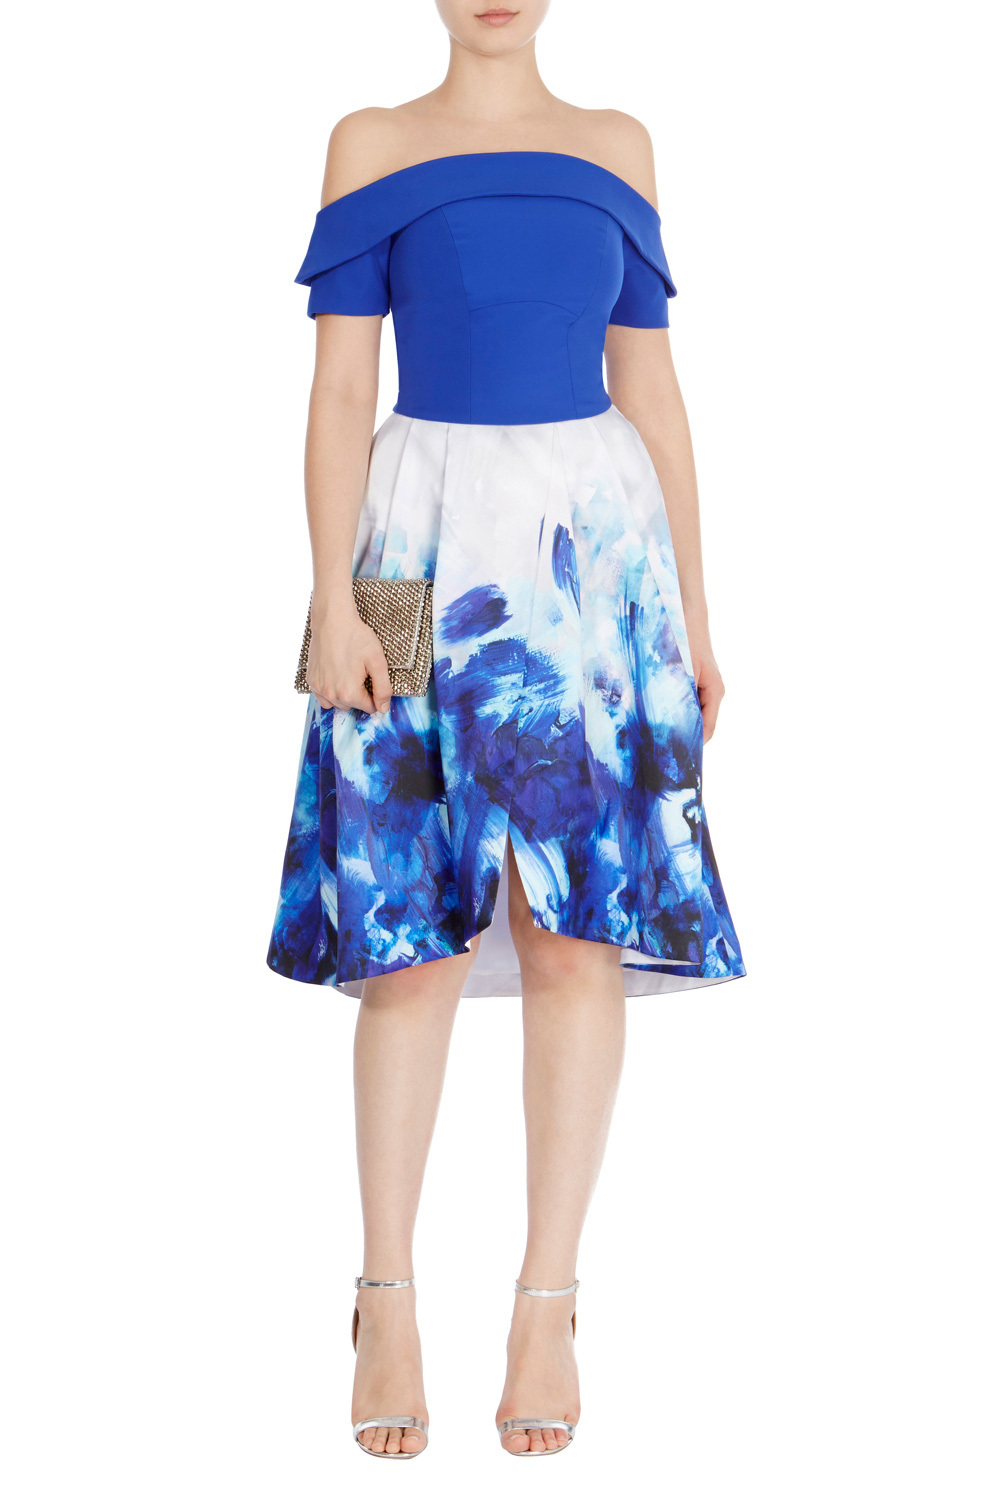 Padua Print Wrap Skirt - length: below the knee; style: wrap/faux wrap; fit: loose/voluminous; waist: mid/regular rise; predominant colour: ivory/cream; secondary colour: royal blue; occasions: evening; fibres: polyester/polyamide - 100%; pattern type: fabric; pattern: florals; texture group: other - light to midweight; multicoloured: multicoloured; season: s/s 2016; wardrobe: event